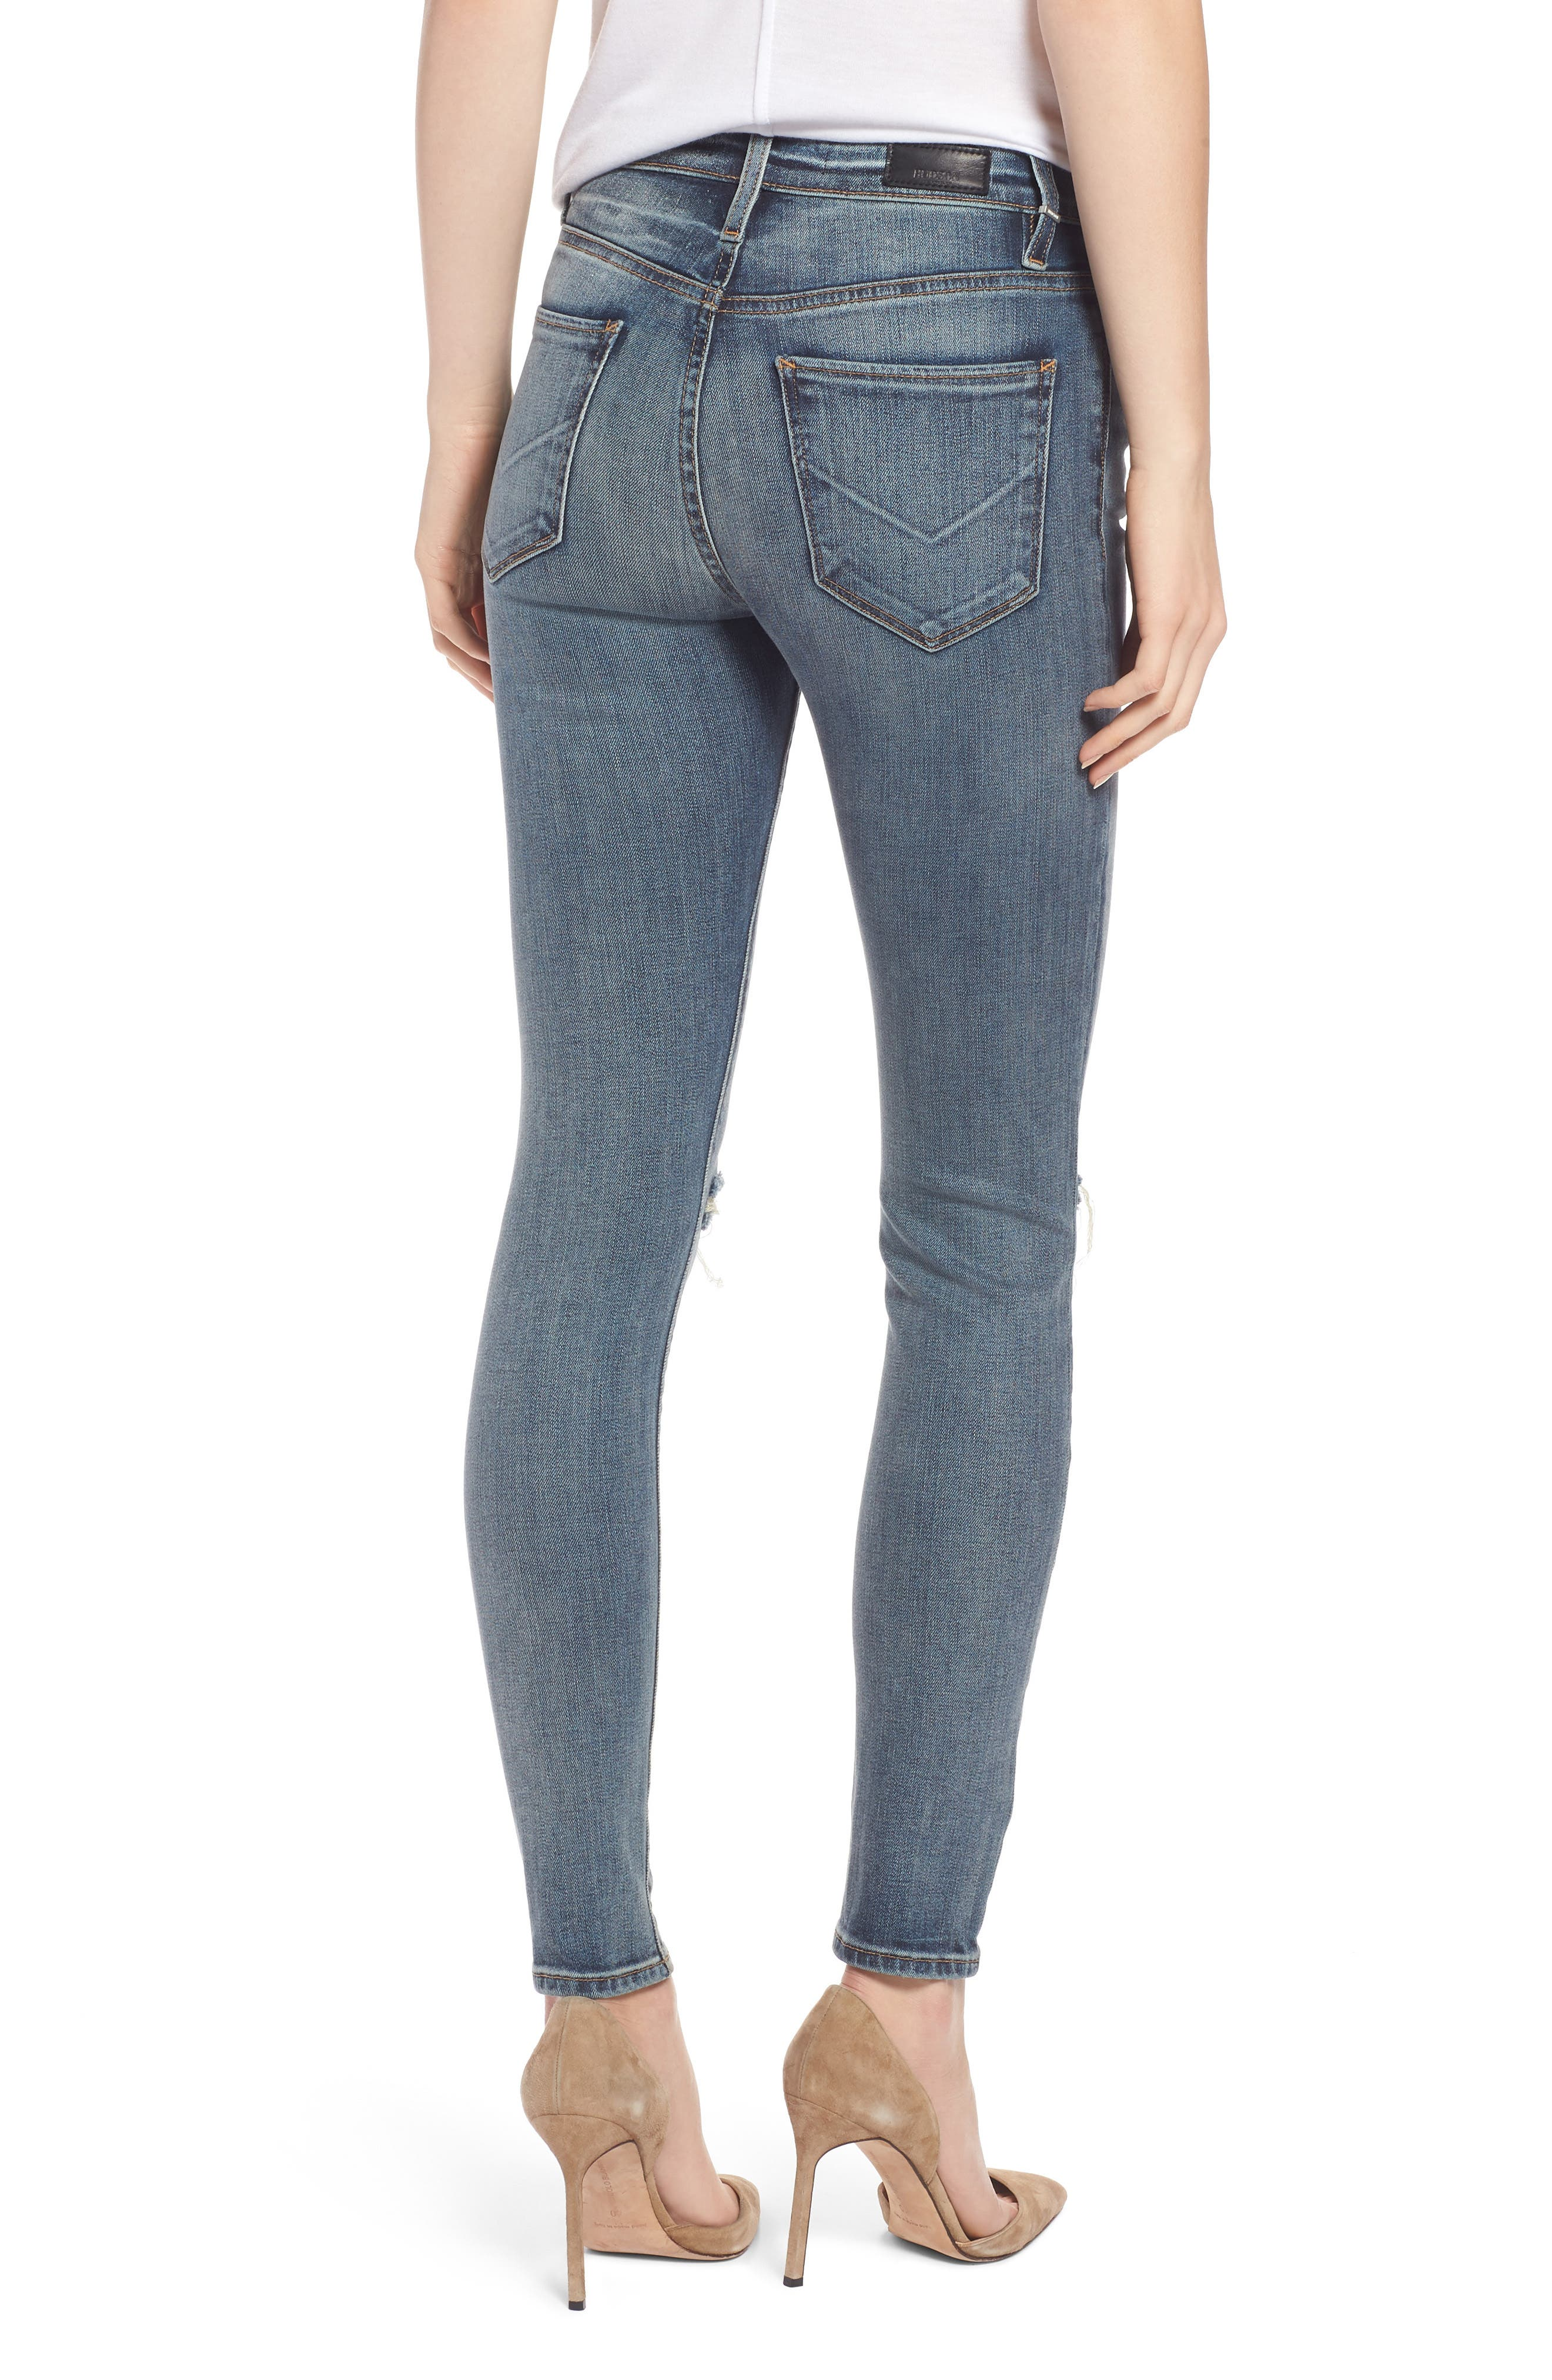 Barbara High Waist Super Skinny Jeans,                             Alternate thumbnail 2, color,                             420